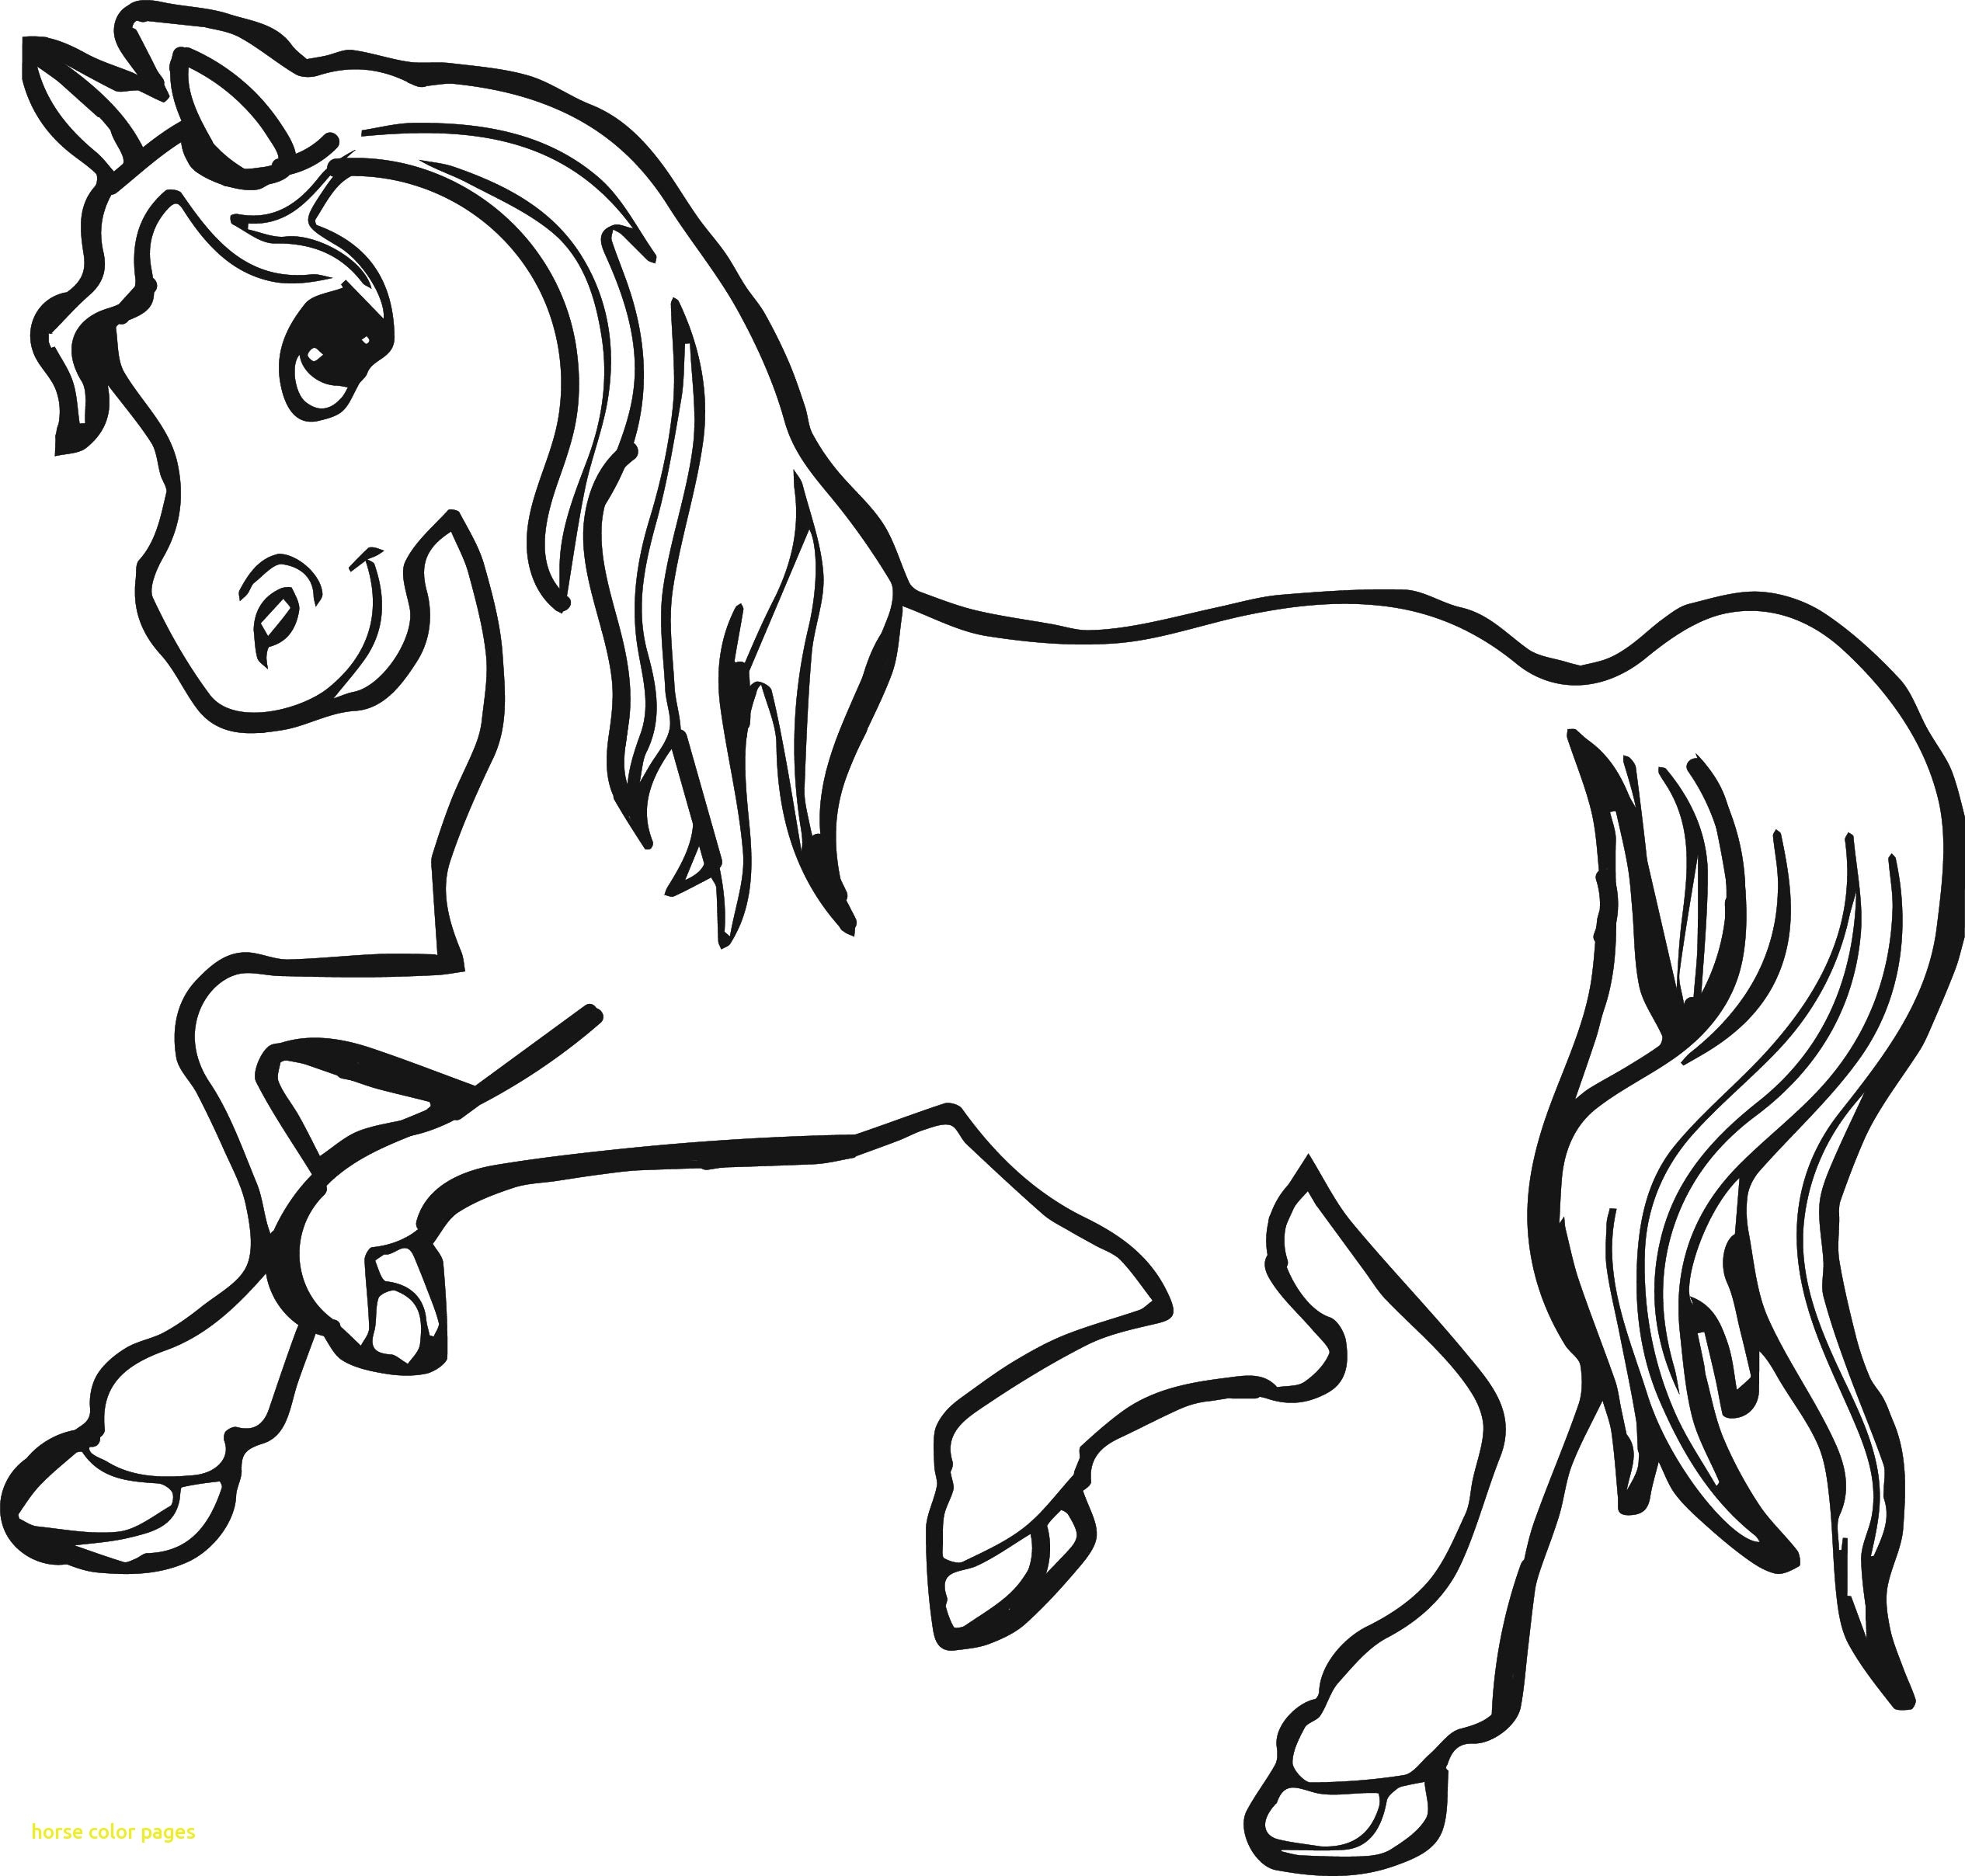 2530x2416 Best Horse Color Pages With Running Horse Coloring Pages